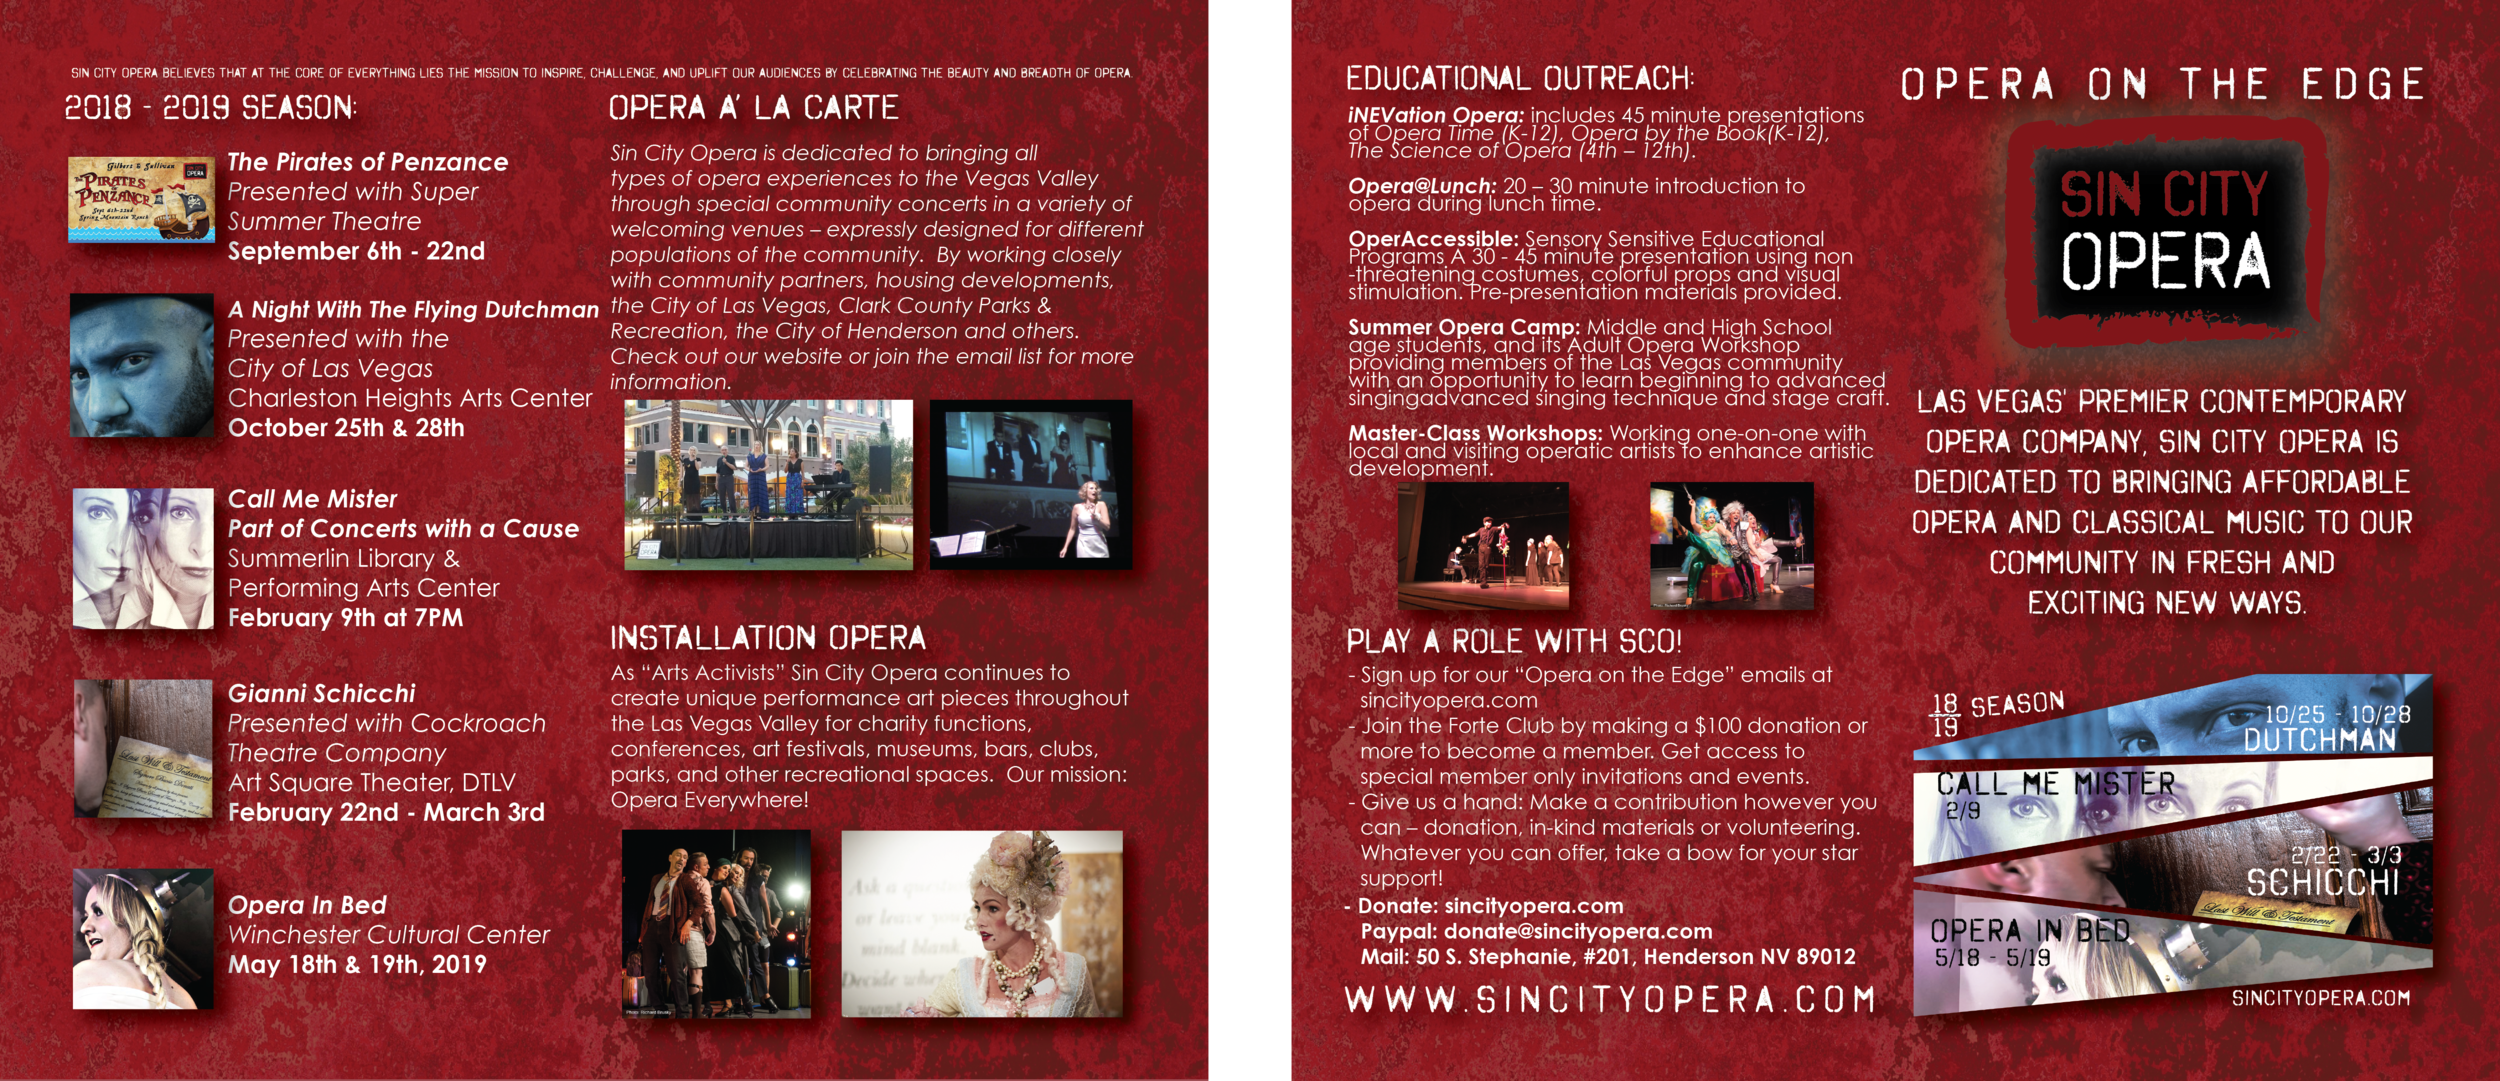 Sin City Opera 2018-2019 Season Rack Card